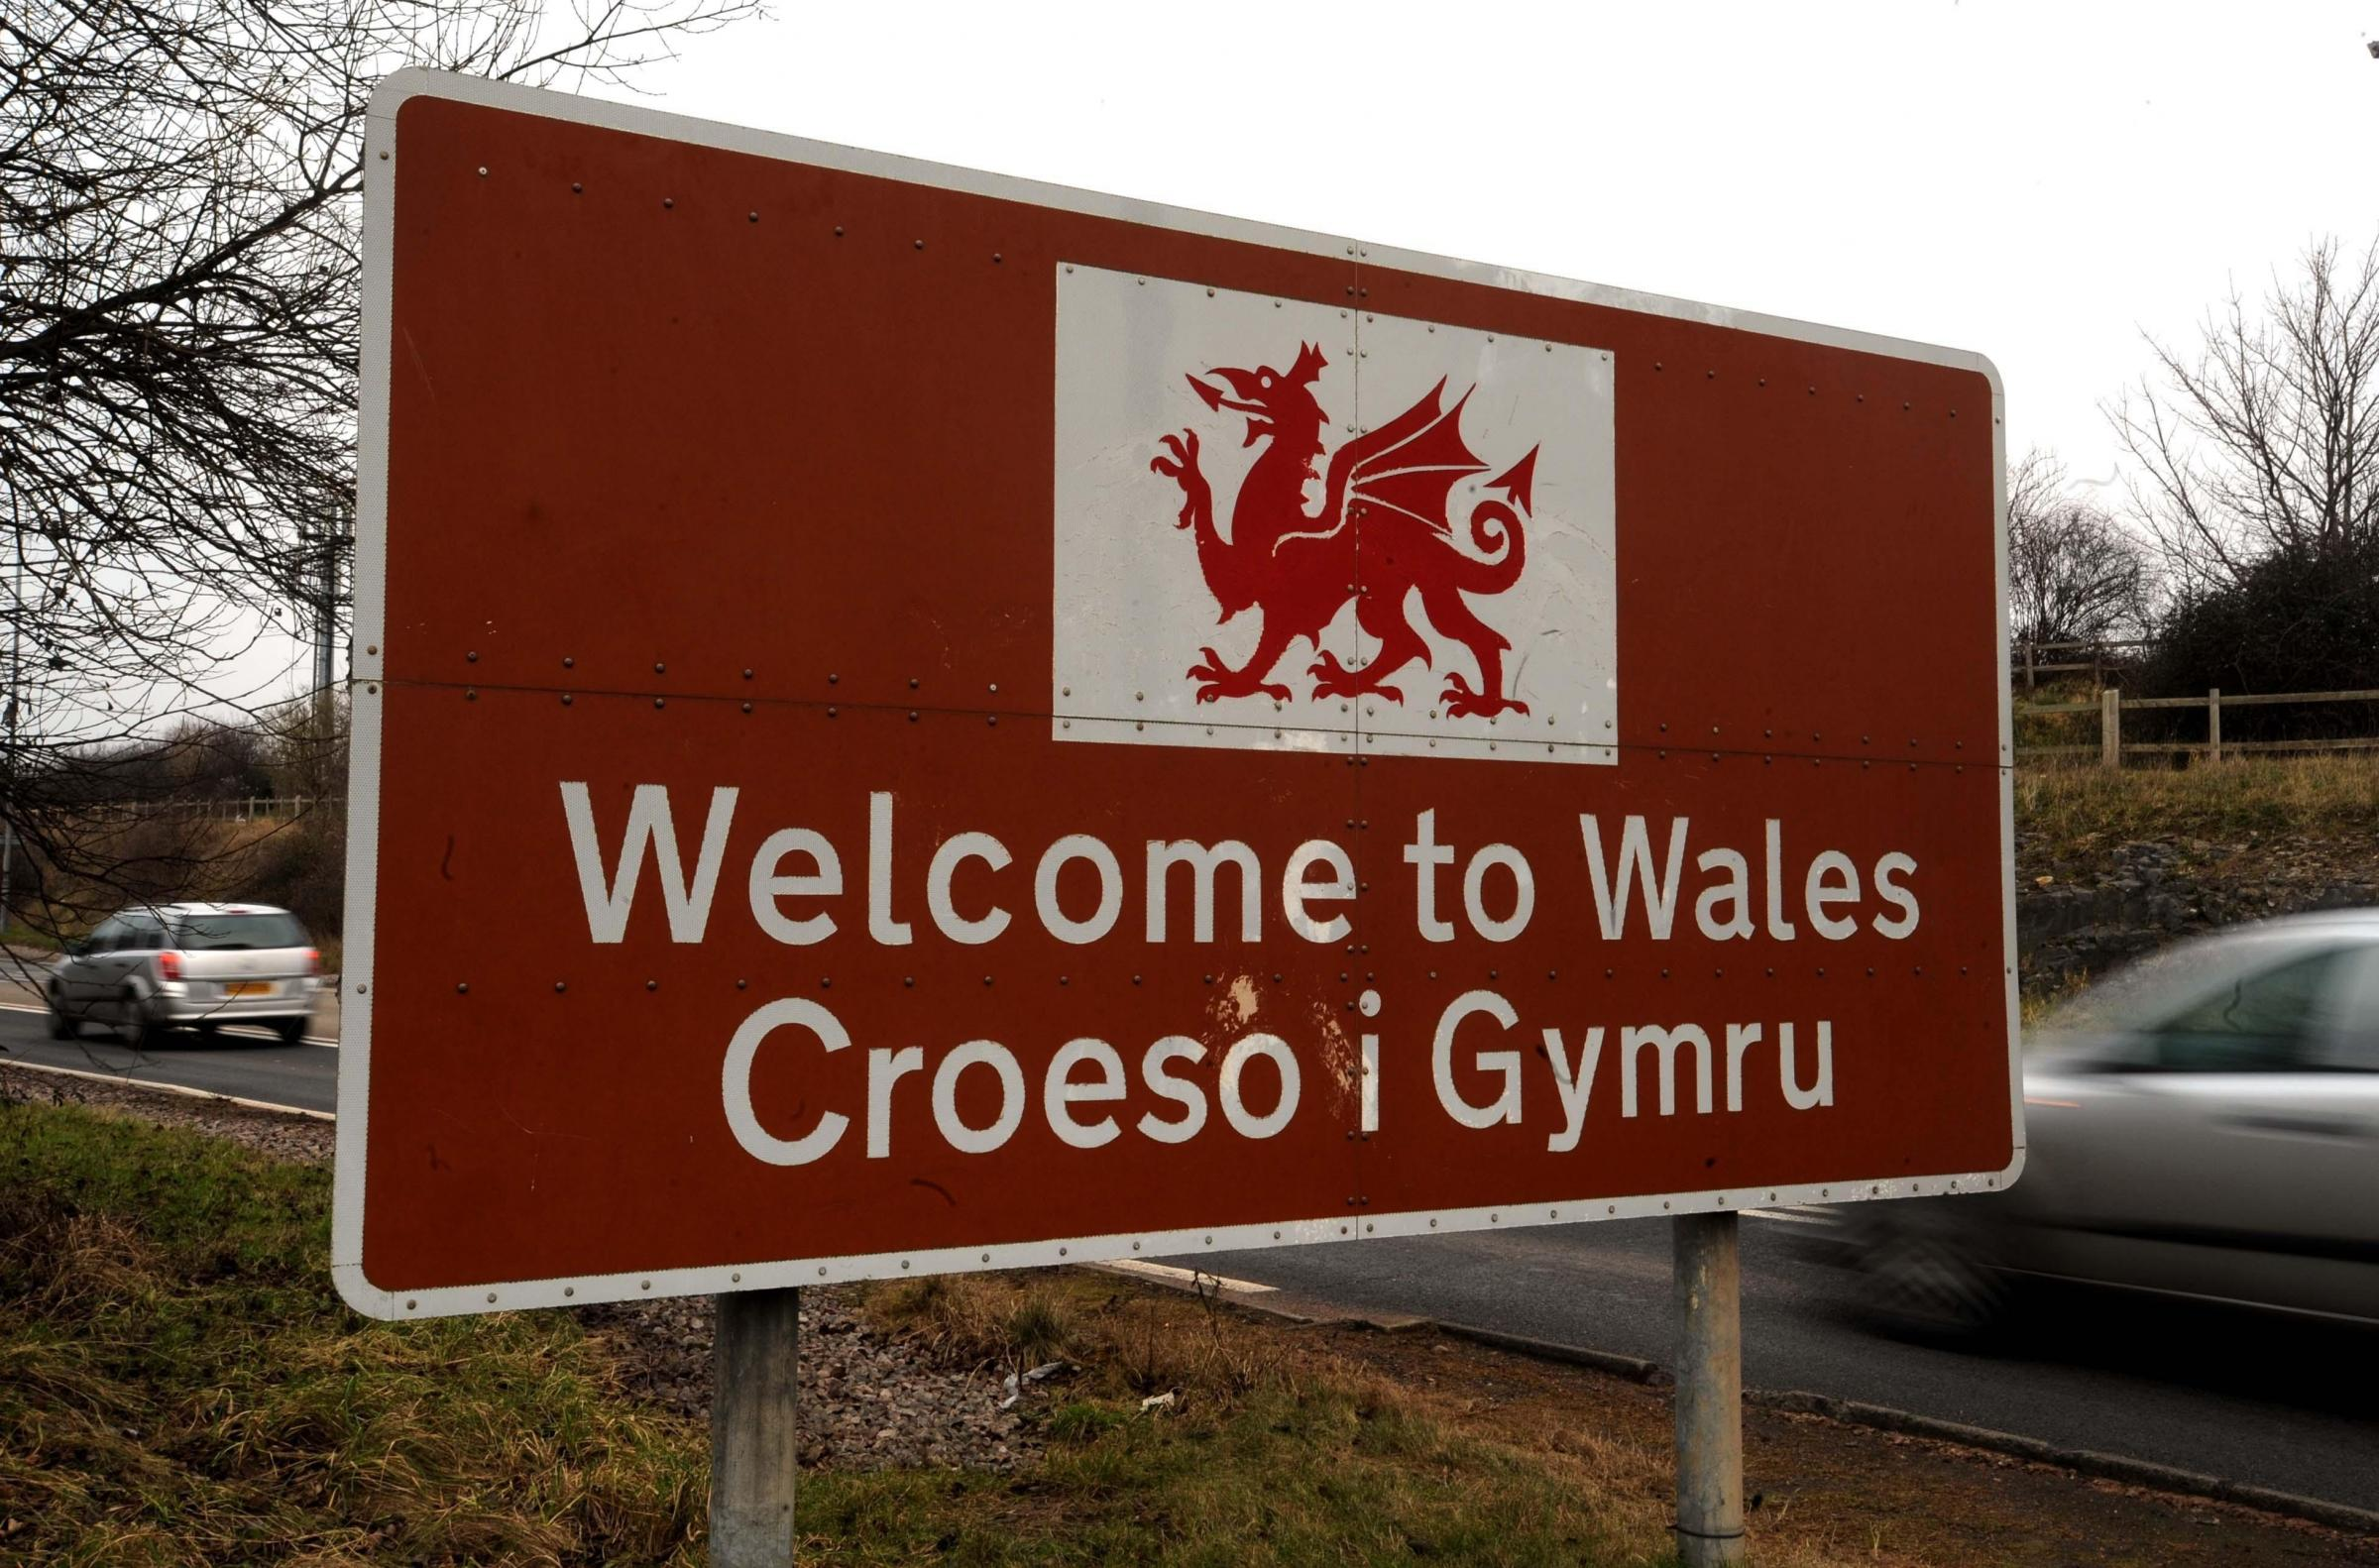 ROAD SIGNS: Some councils have expressed concerns over proposals for Welsh to appear first on bilingual road signs.